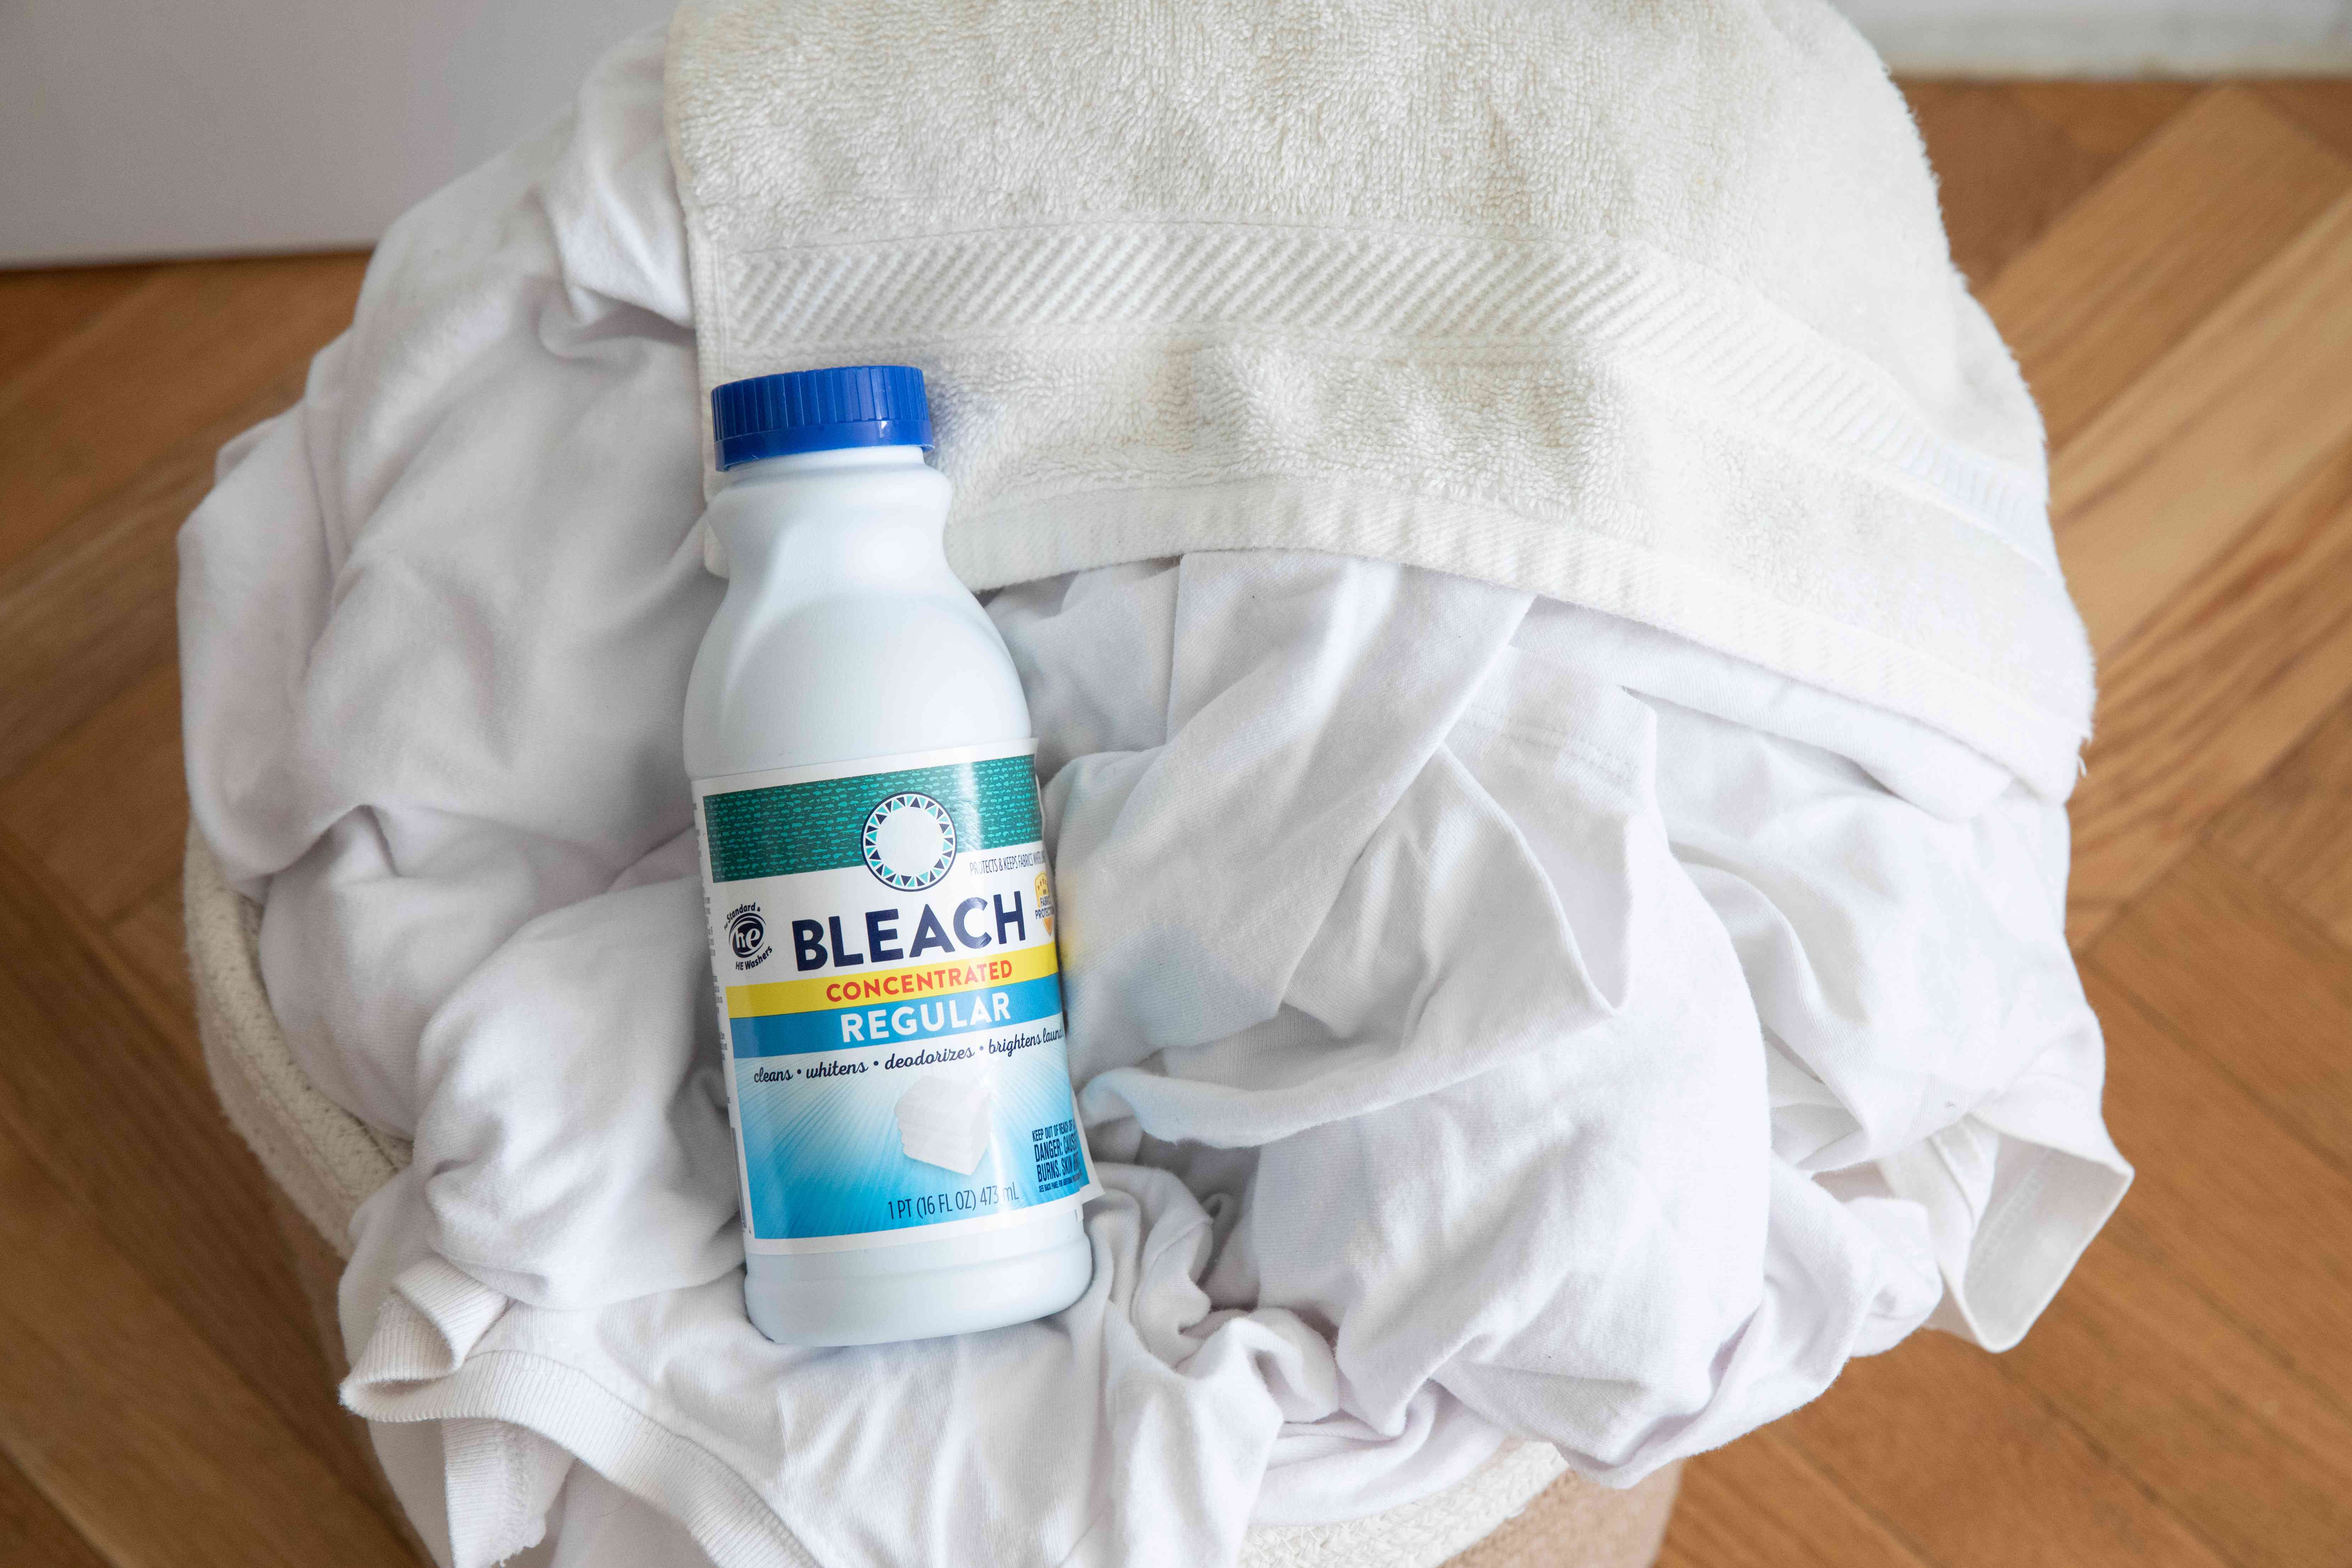 Chlorine bleach bottle on pile of white clothes and blankets